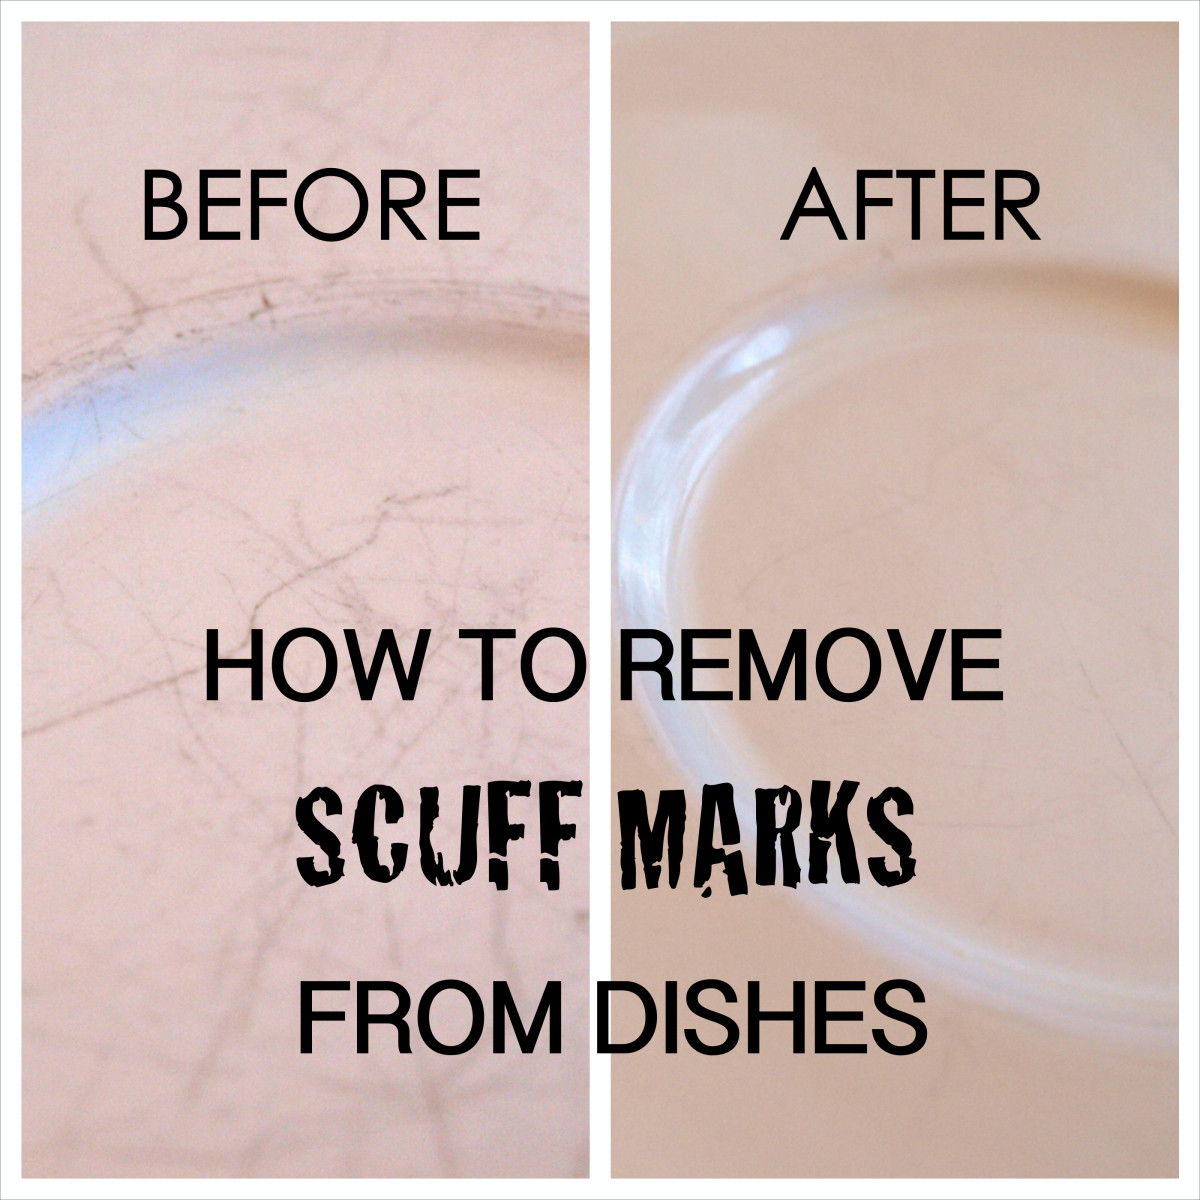 Remove scuff marks from dishes with this easy method!